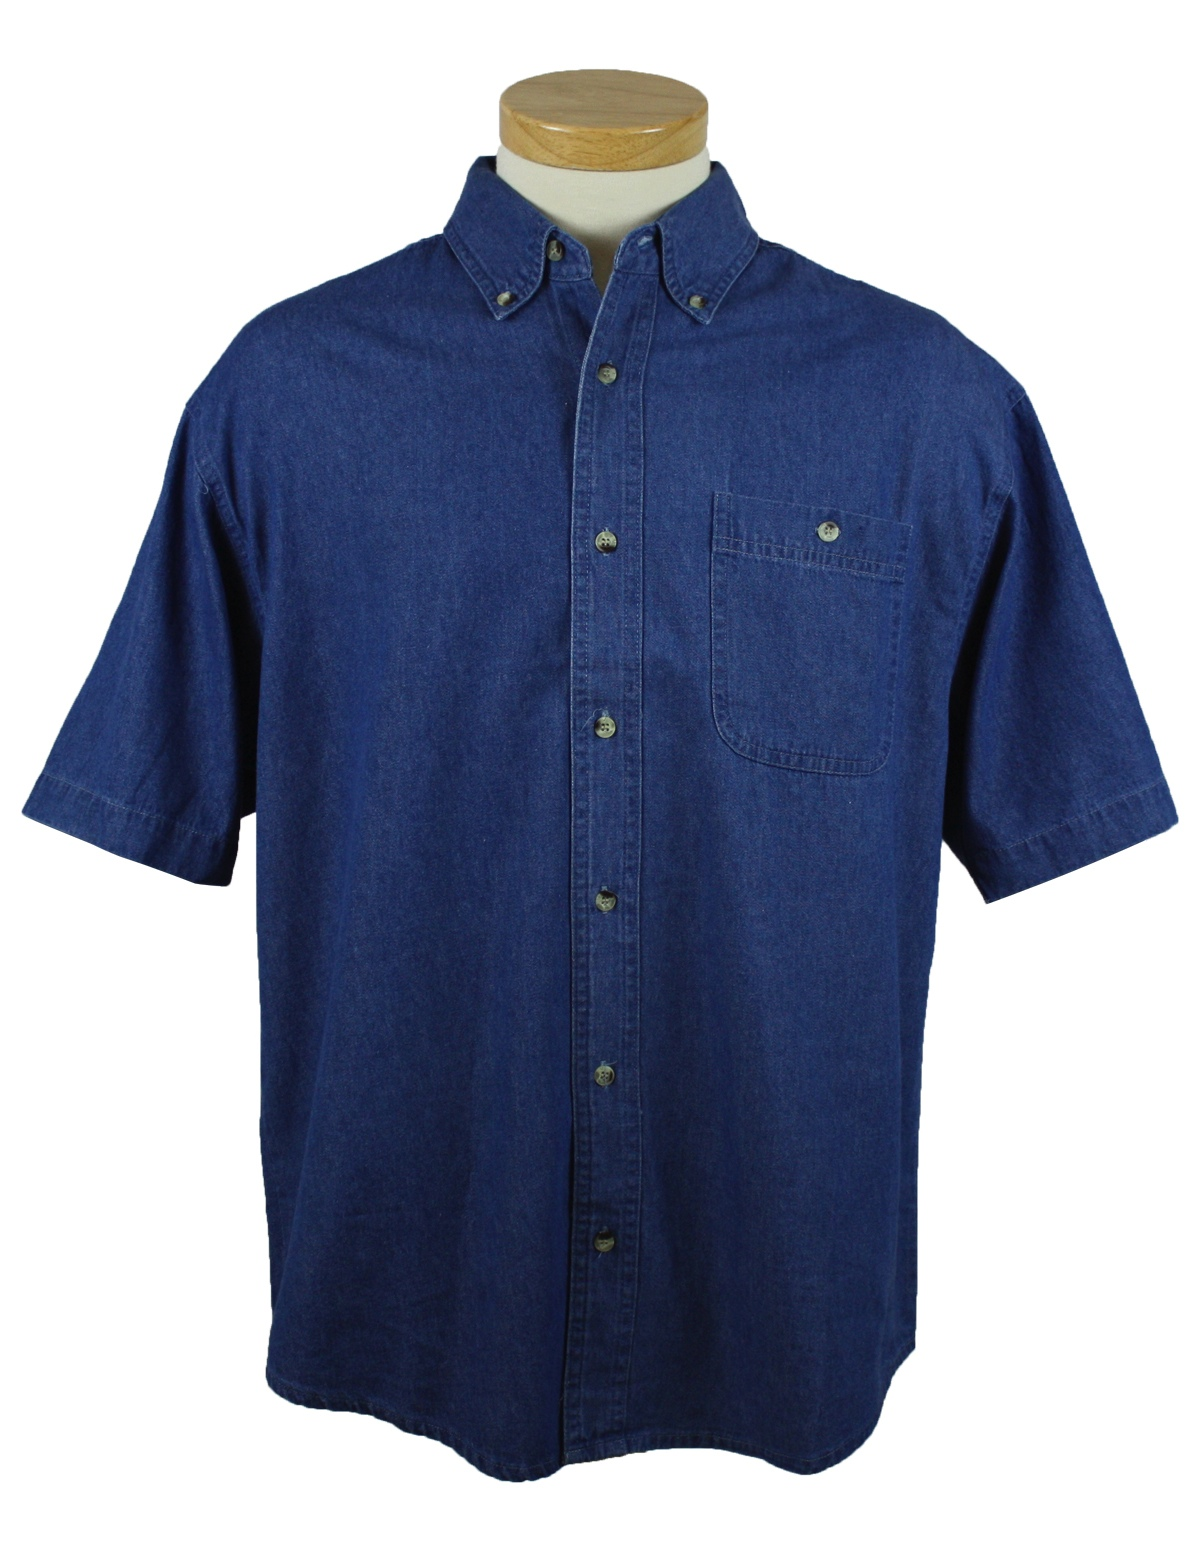 828 Tri-Mtn Short Sleeve Denim Shirt - TALL SIZES